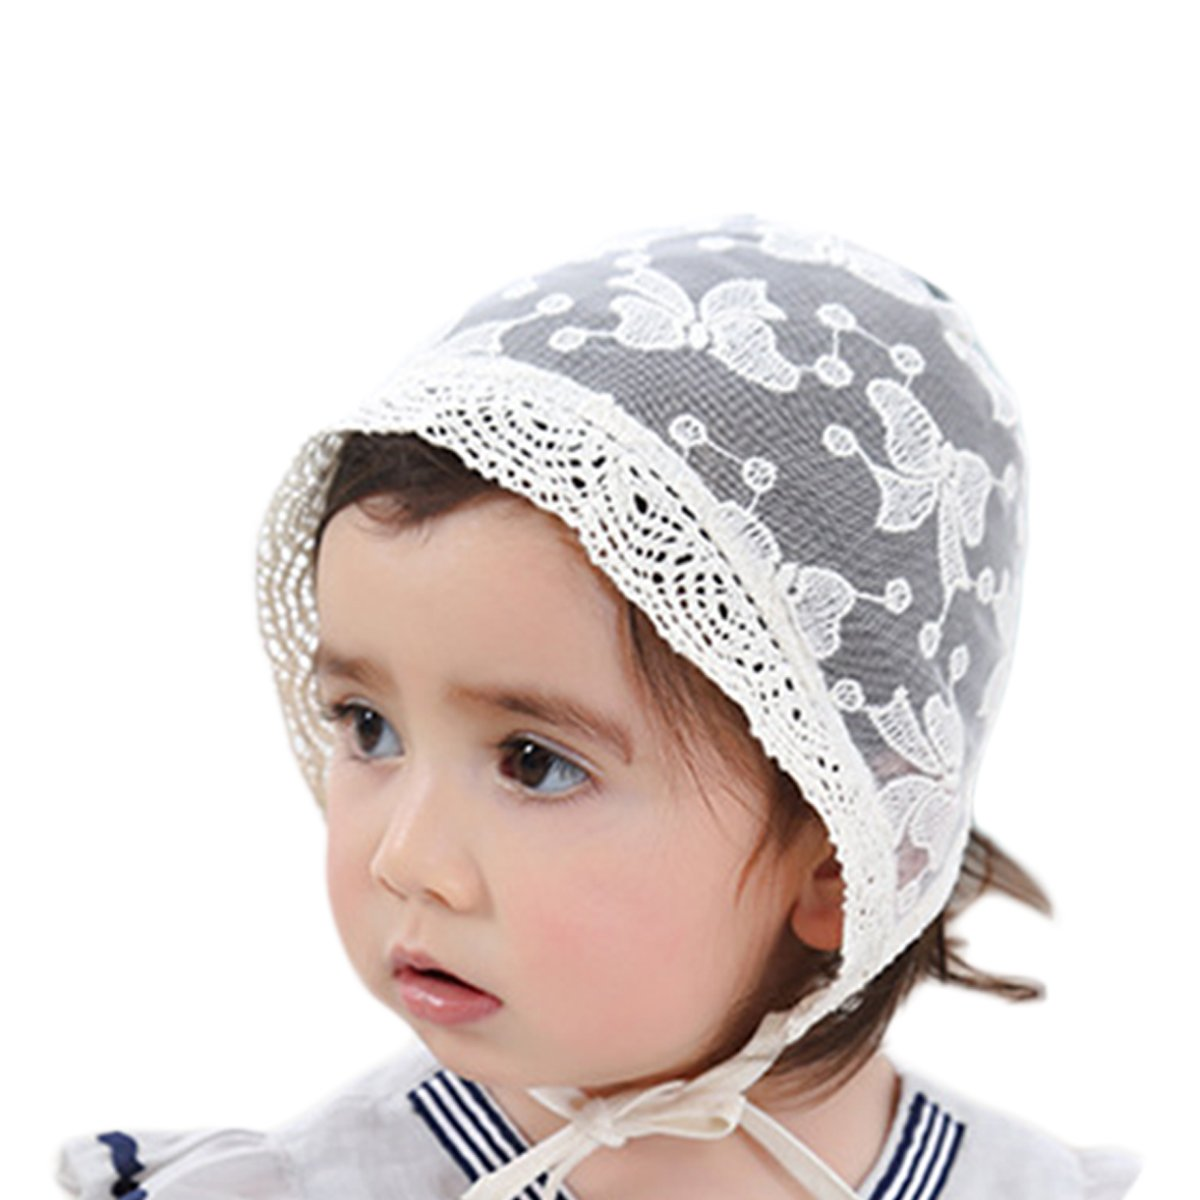 Babys Bonnet, Aniwon Kids Sun Cap Breathable Sun Protection Hat Summer Travel Hat with Bowknot Flower Decor